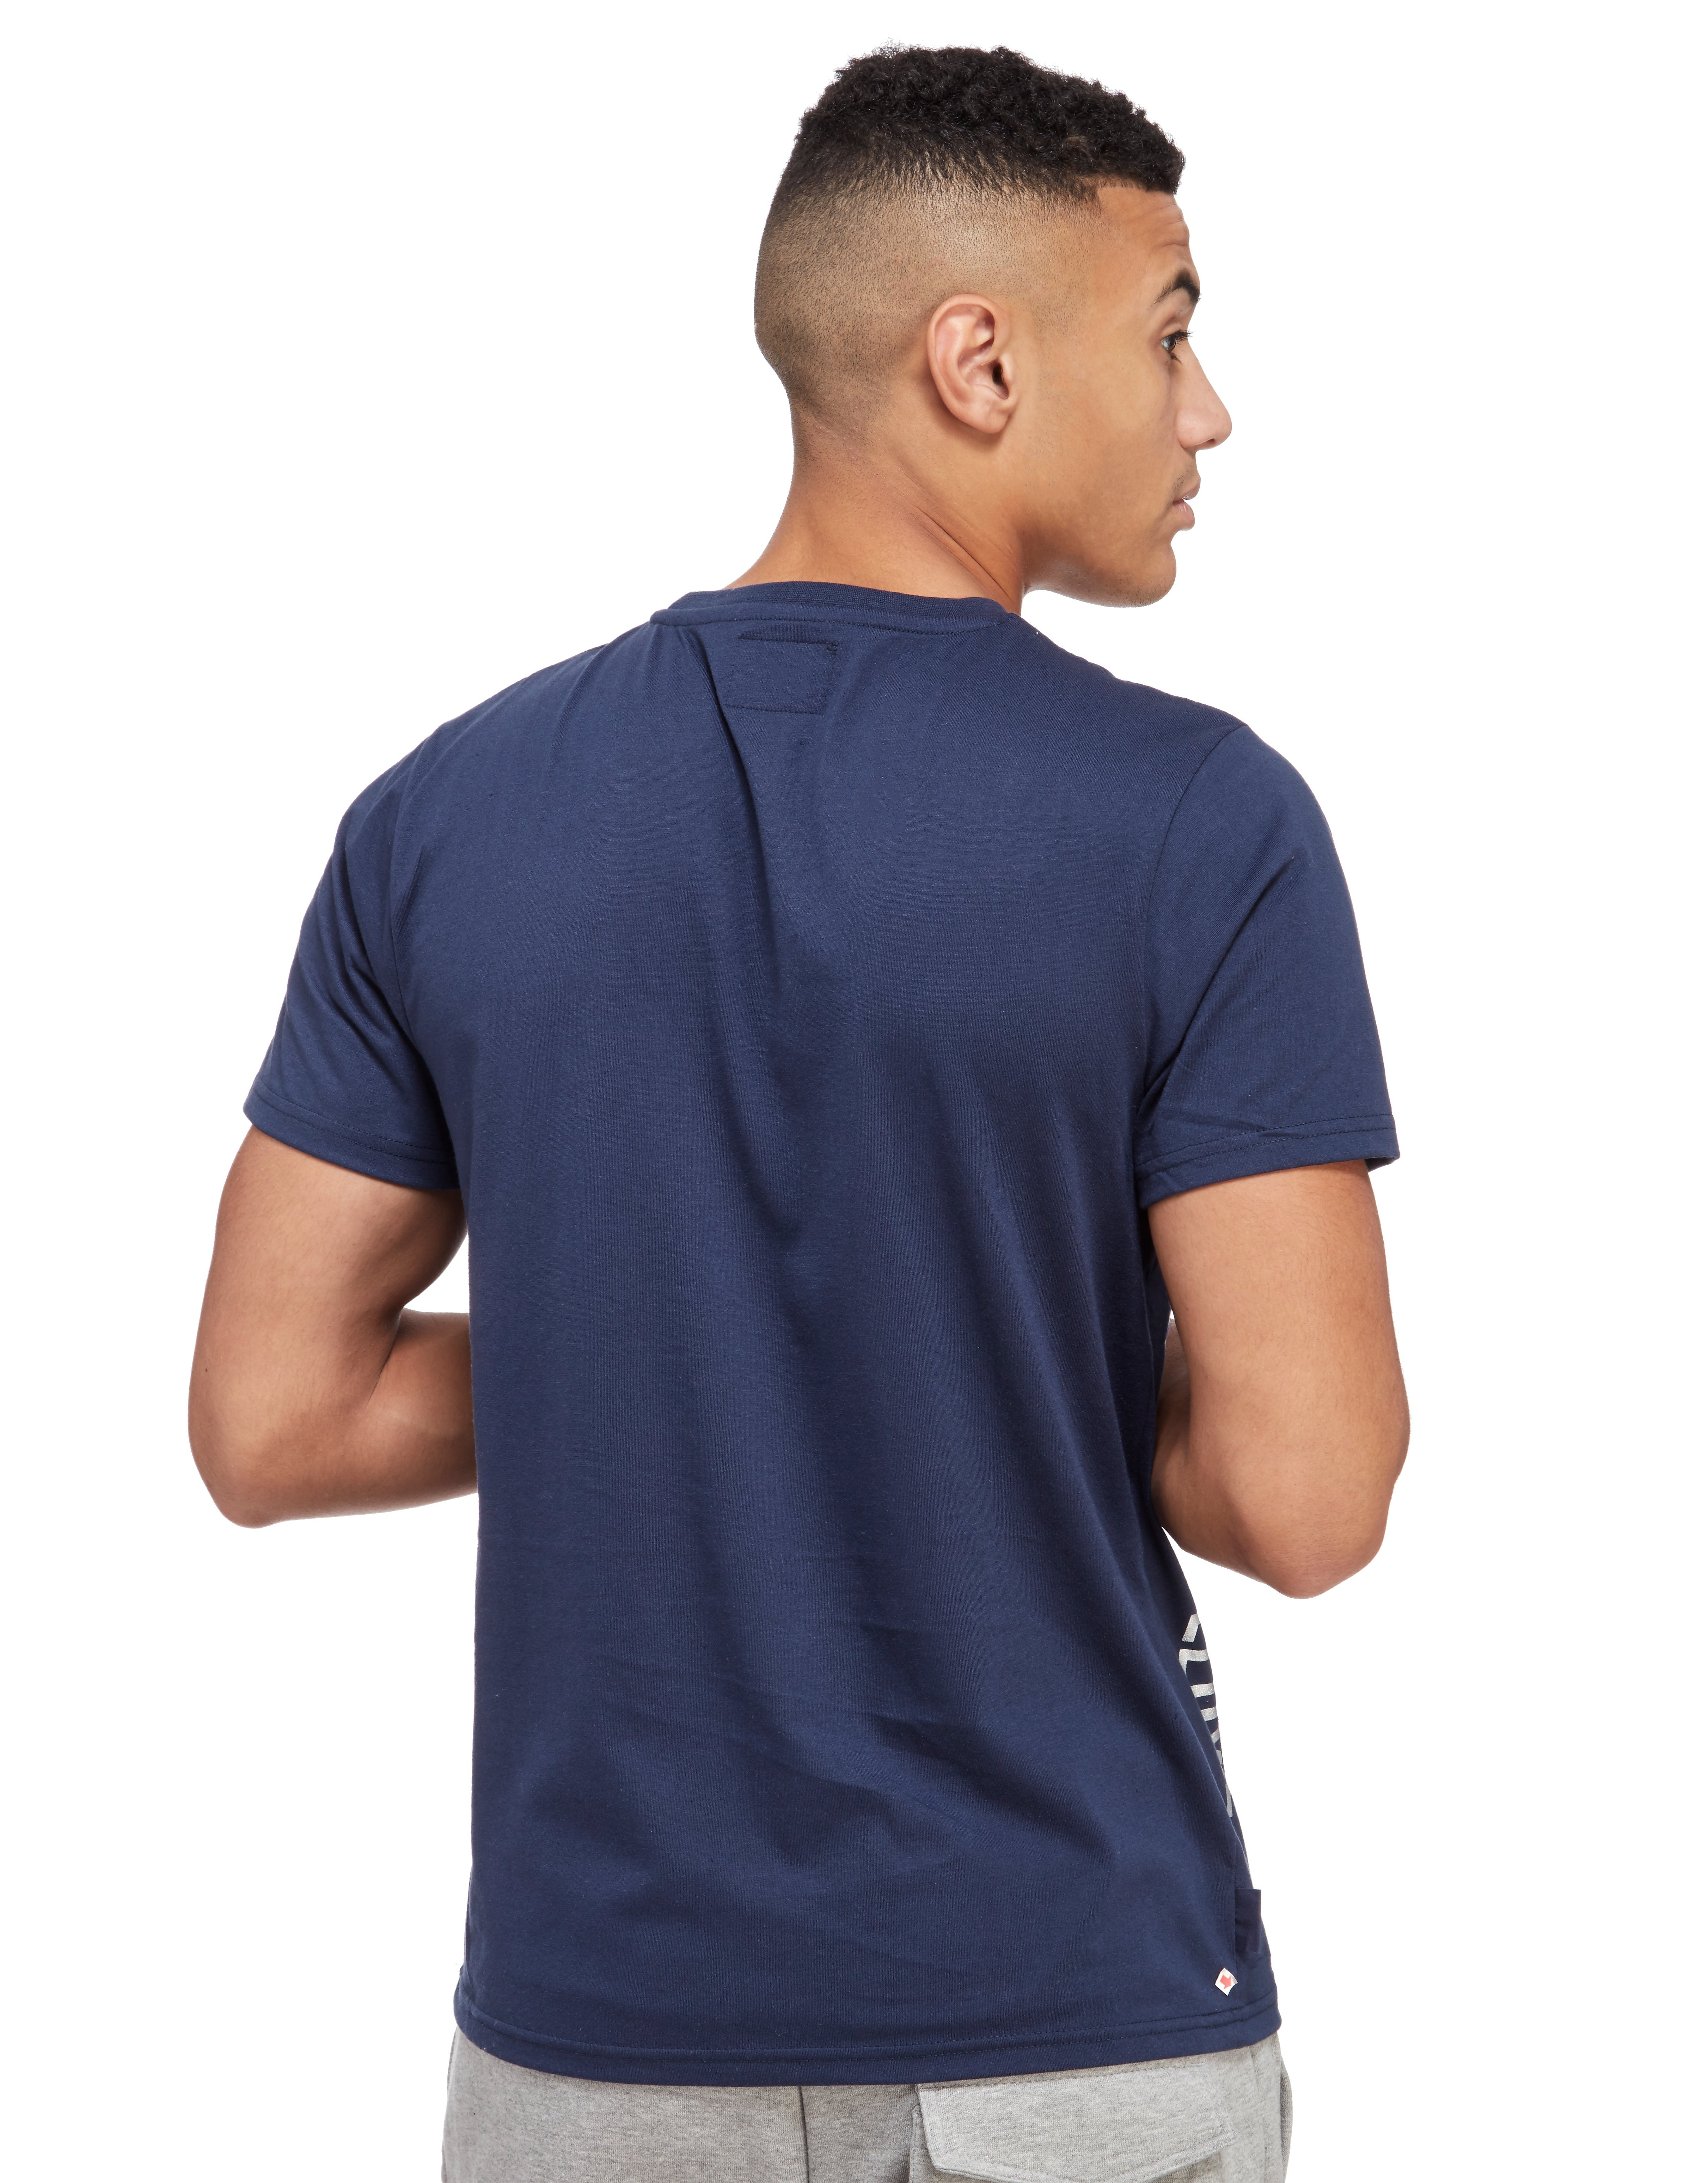 Henleys Lambeth T-Shirt